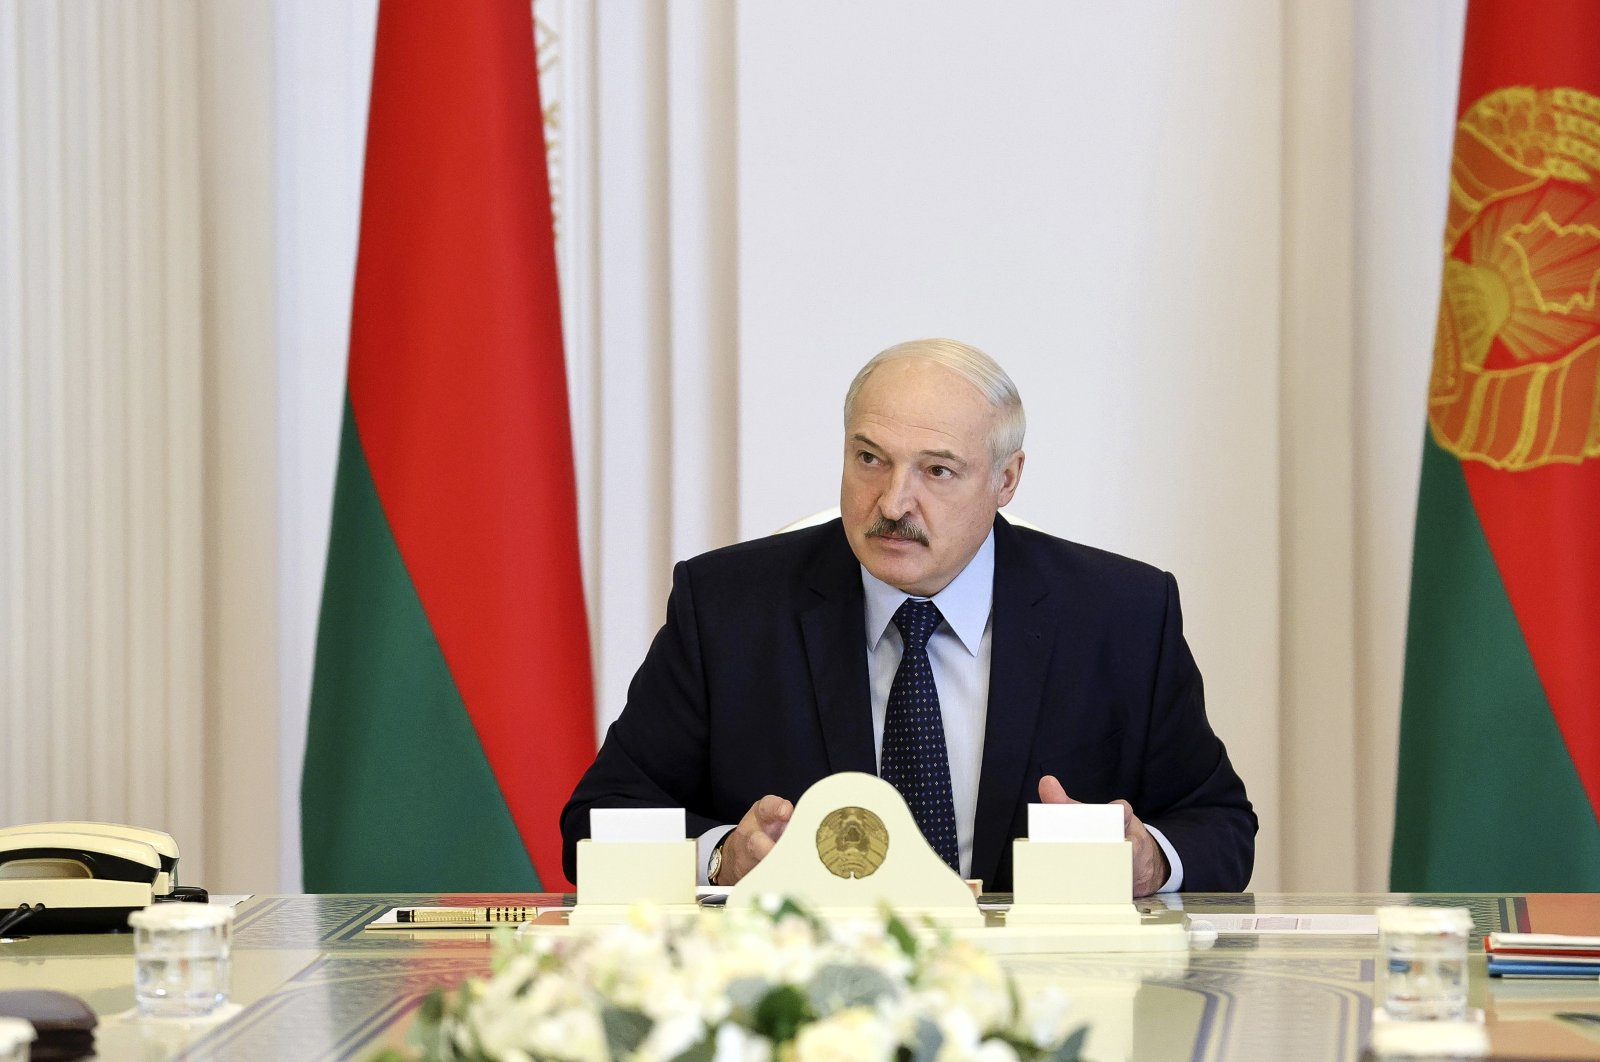 Belarusian President Alexander Lukashenko attends a meeting to discuss ensuring security during the election campaign, Minsk, Belarus, Aug. 6, 2020. (AP Photo)